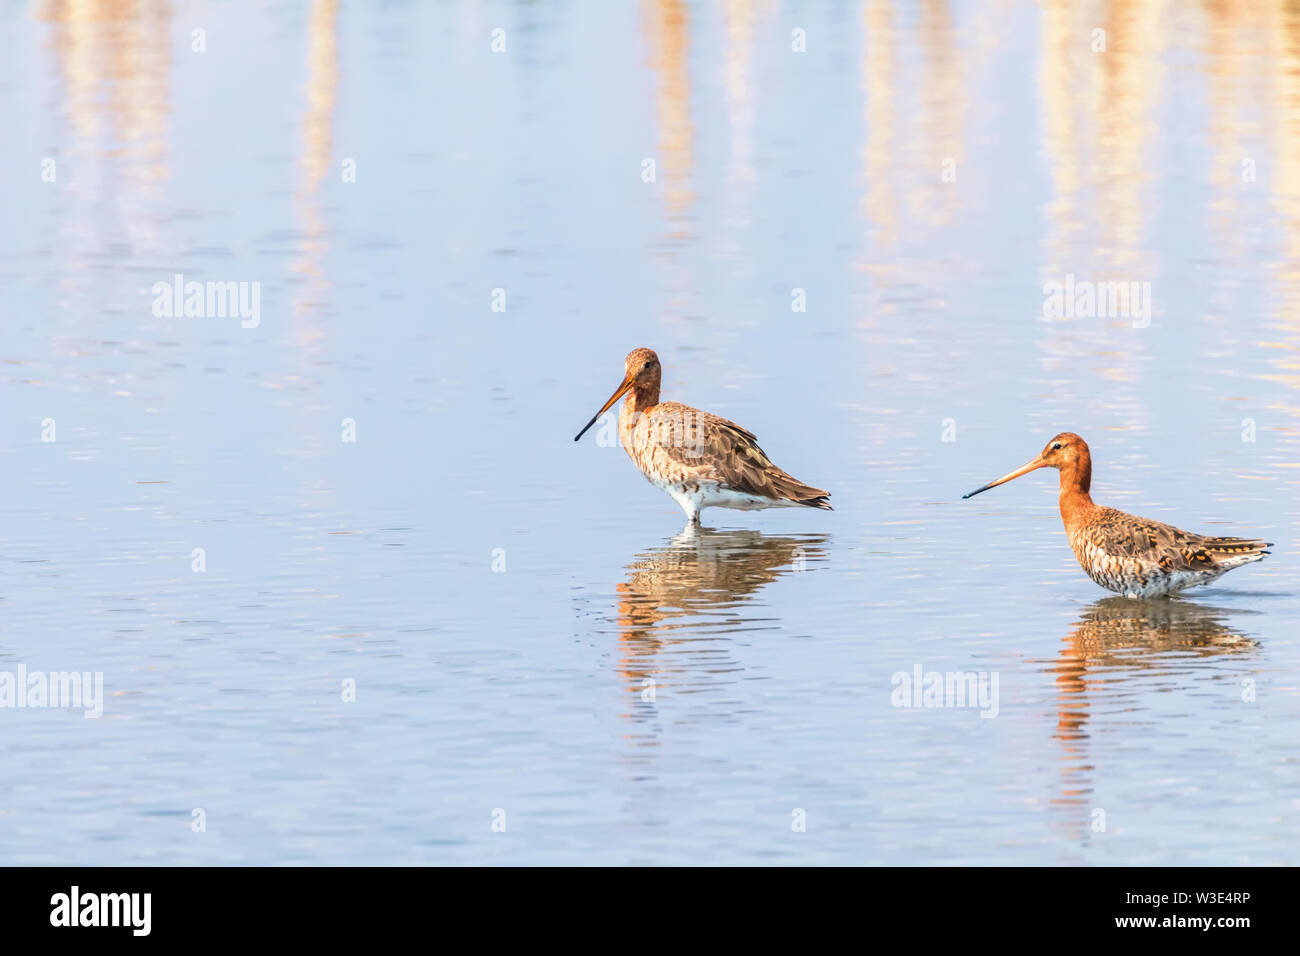 Black Tailed Godwit (Limosa limosa) Wader Birds Foraging in shallow water - Stock Image